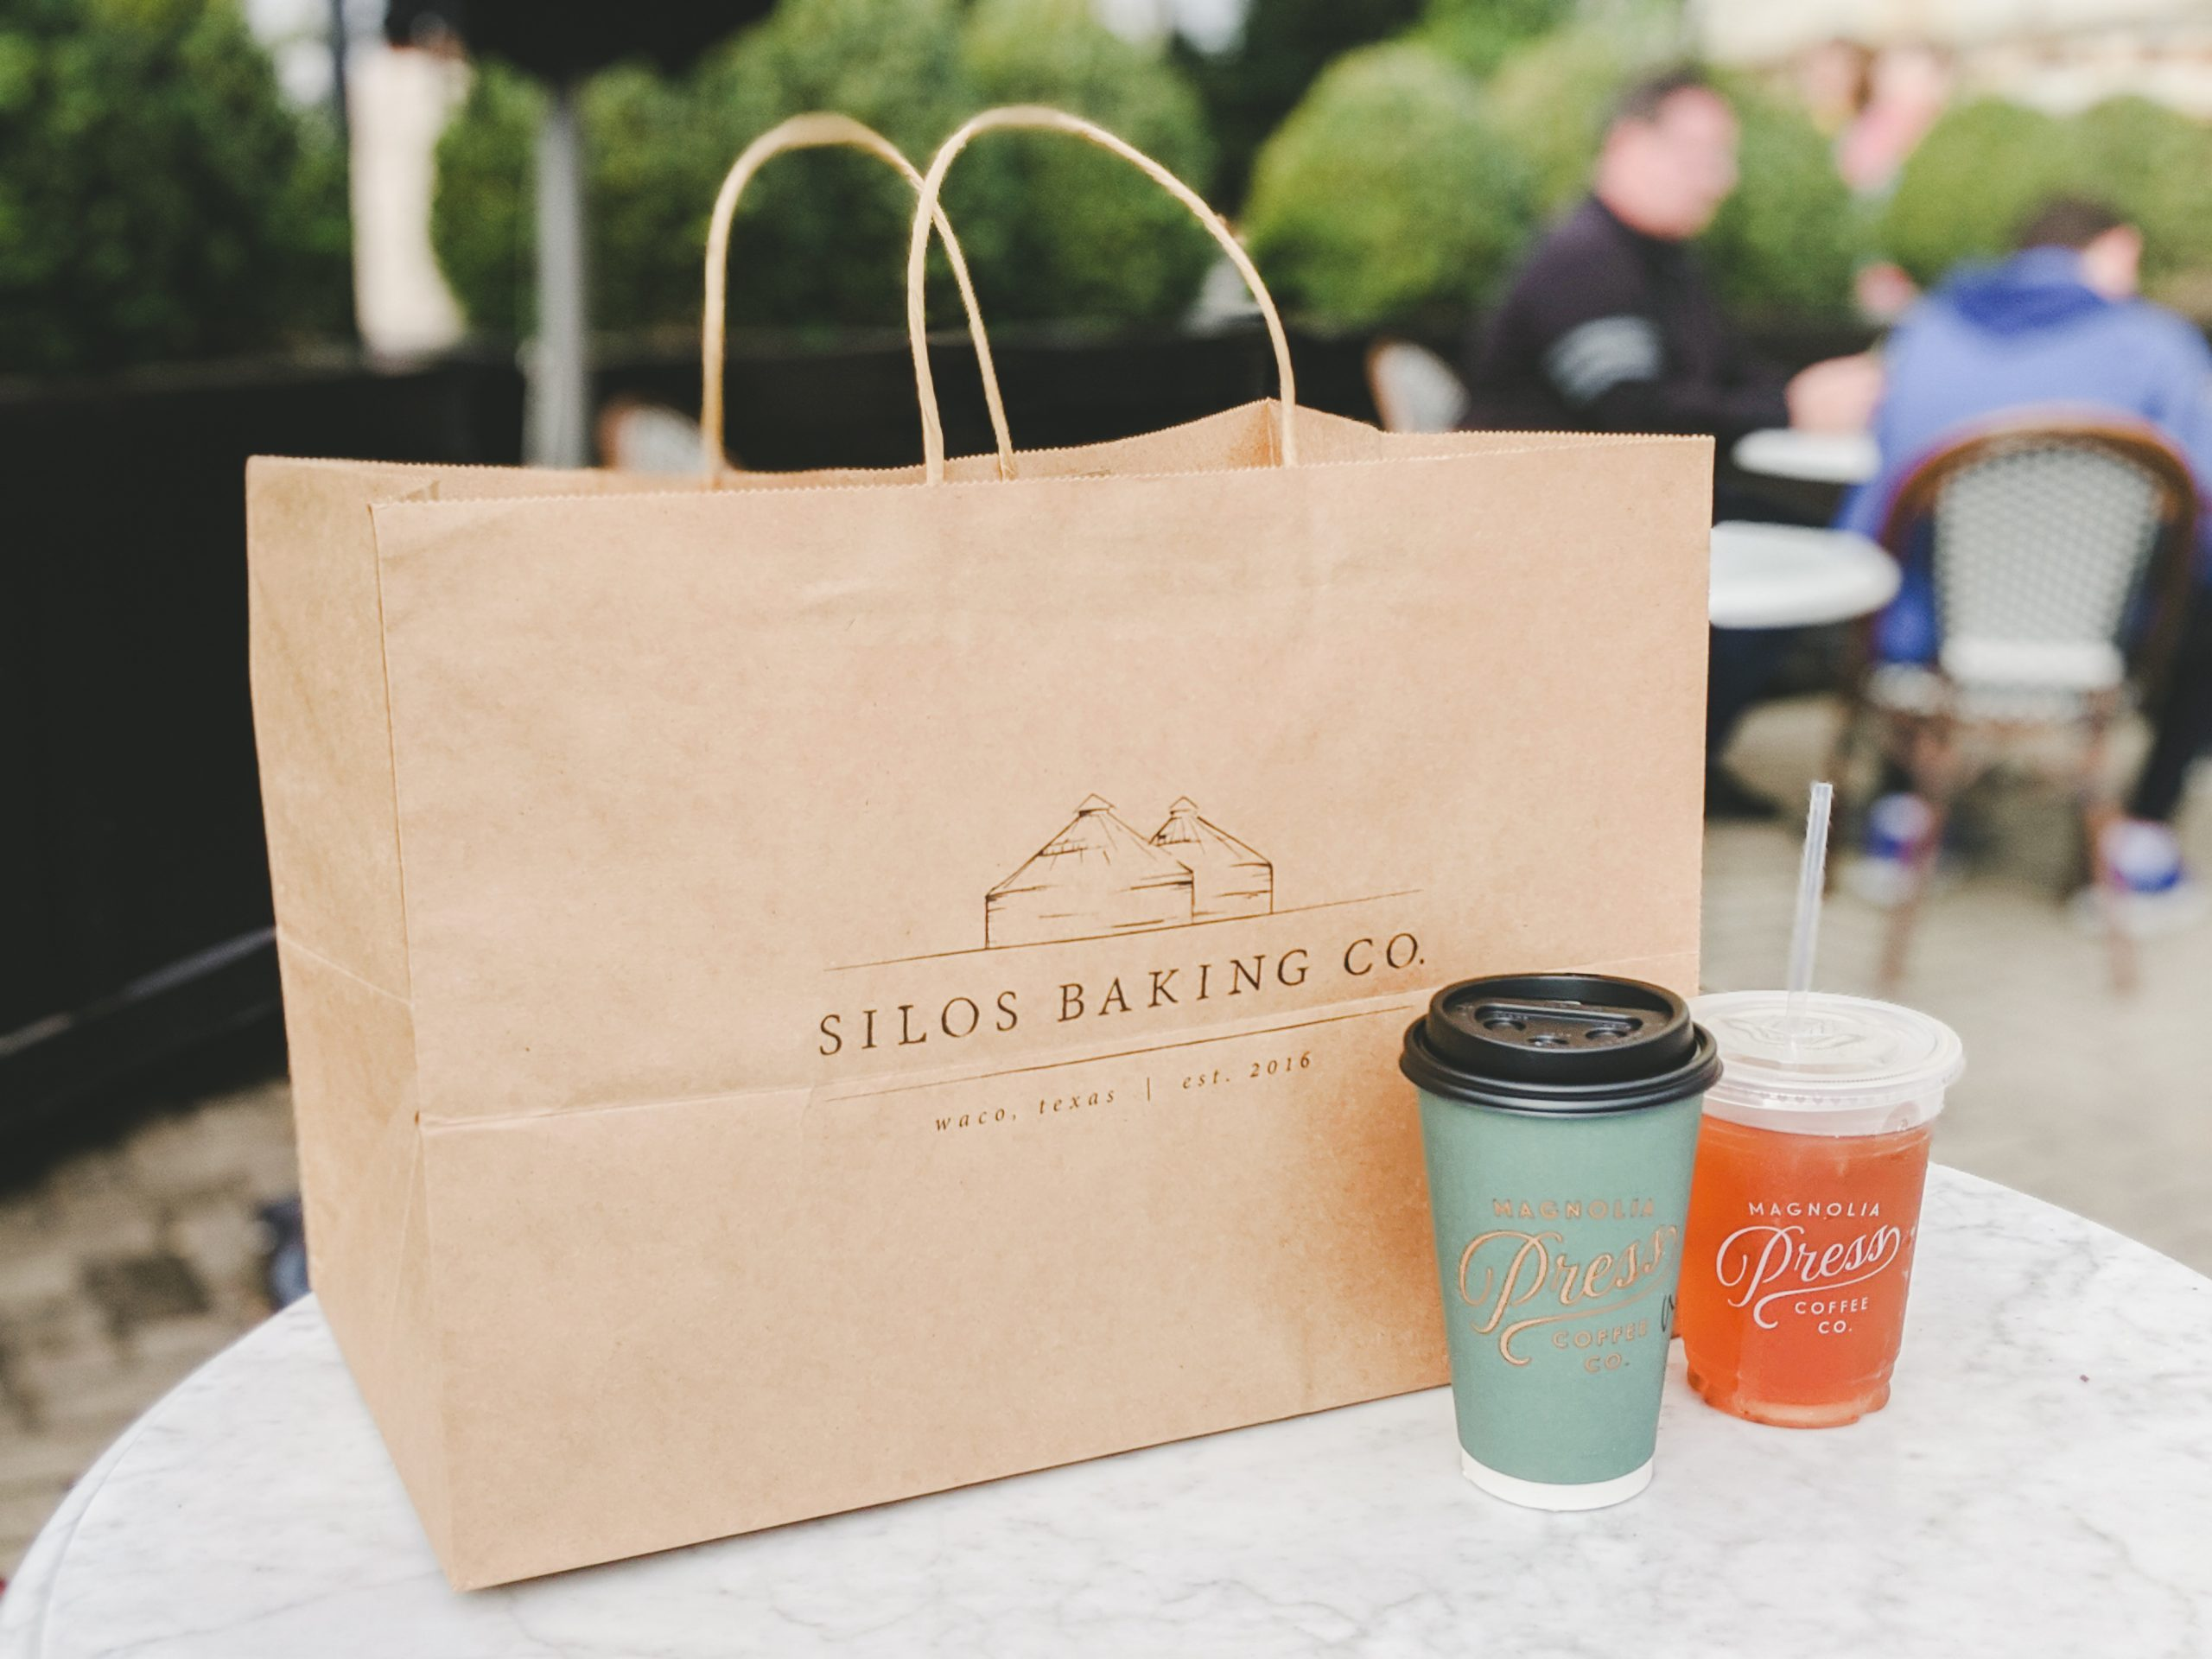 silos baking co. bag and drinks